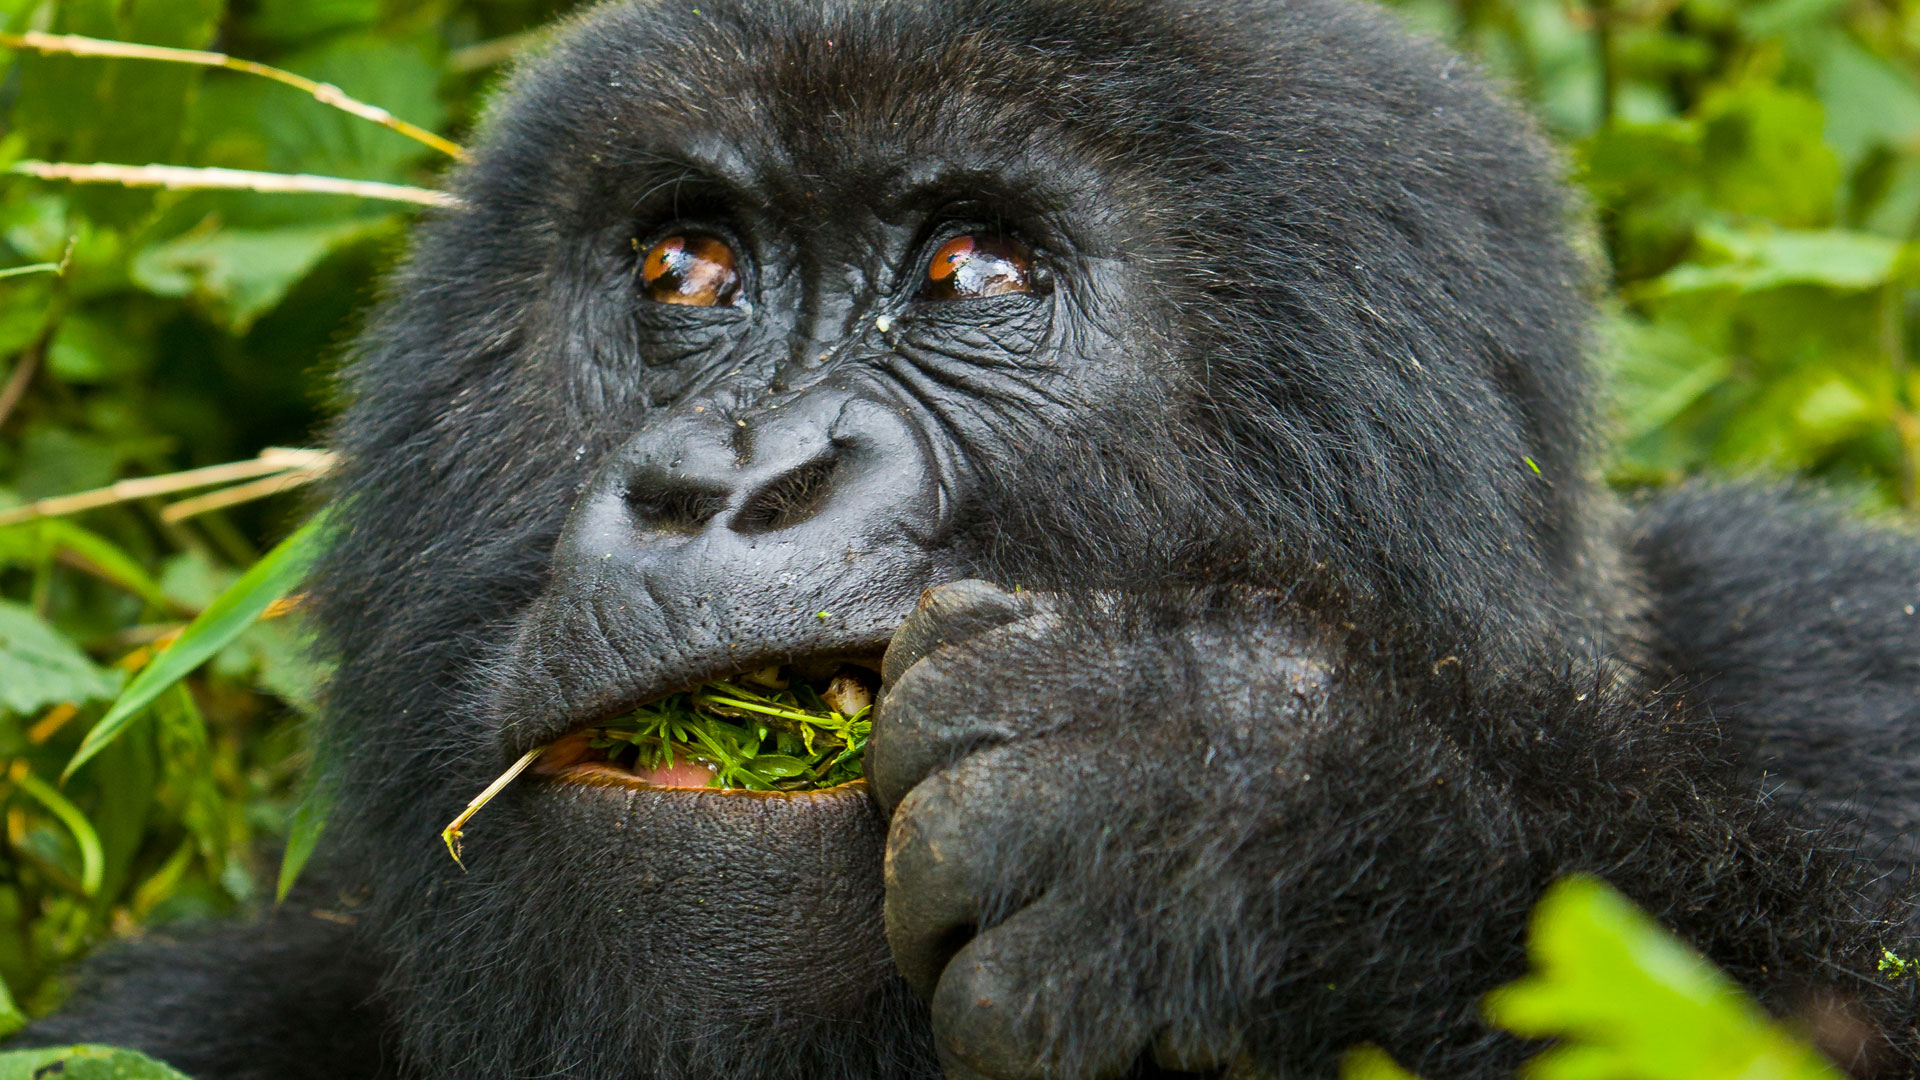 Gorillas Eat Roots, Shoots and leaves in their diet